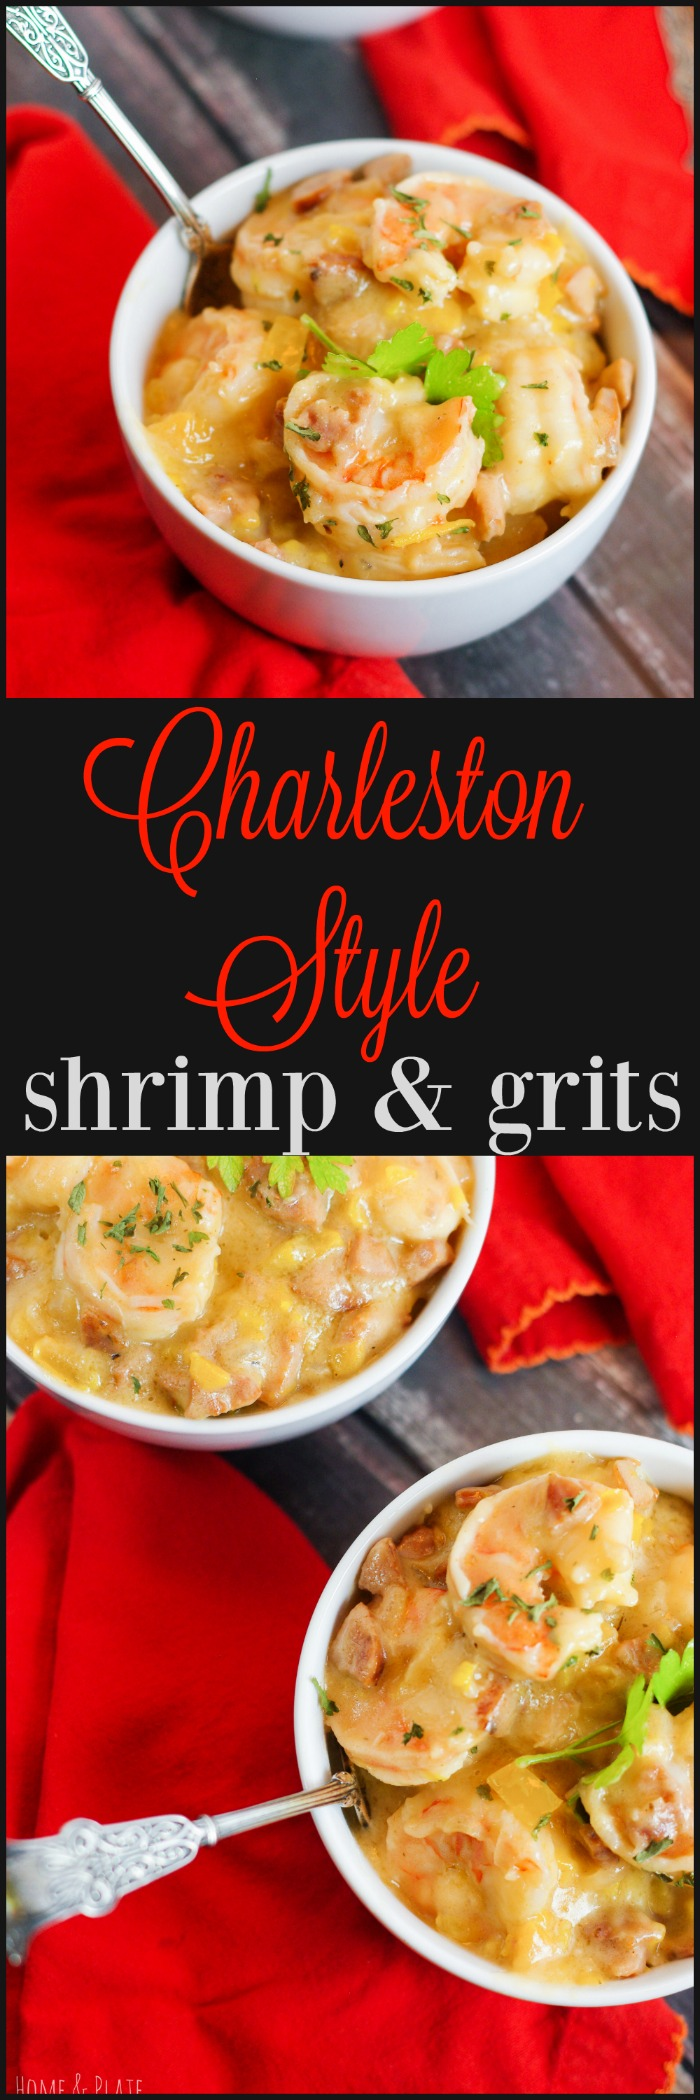 Charleston Style Shrimp & Grits | www.homeandplate.com | The shrimp is pink and tender, the course grits are creamy and cheesy and the heat from the andouille sausage will warm your belly.